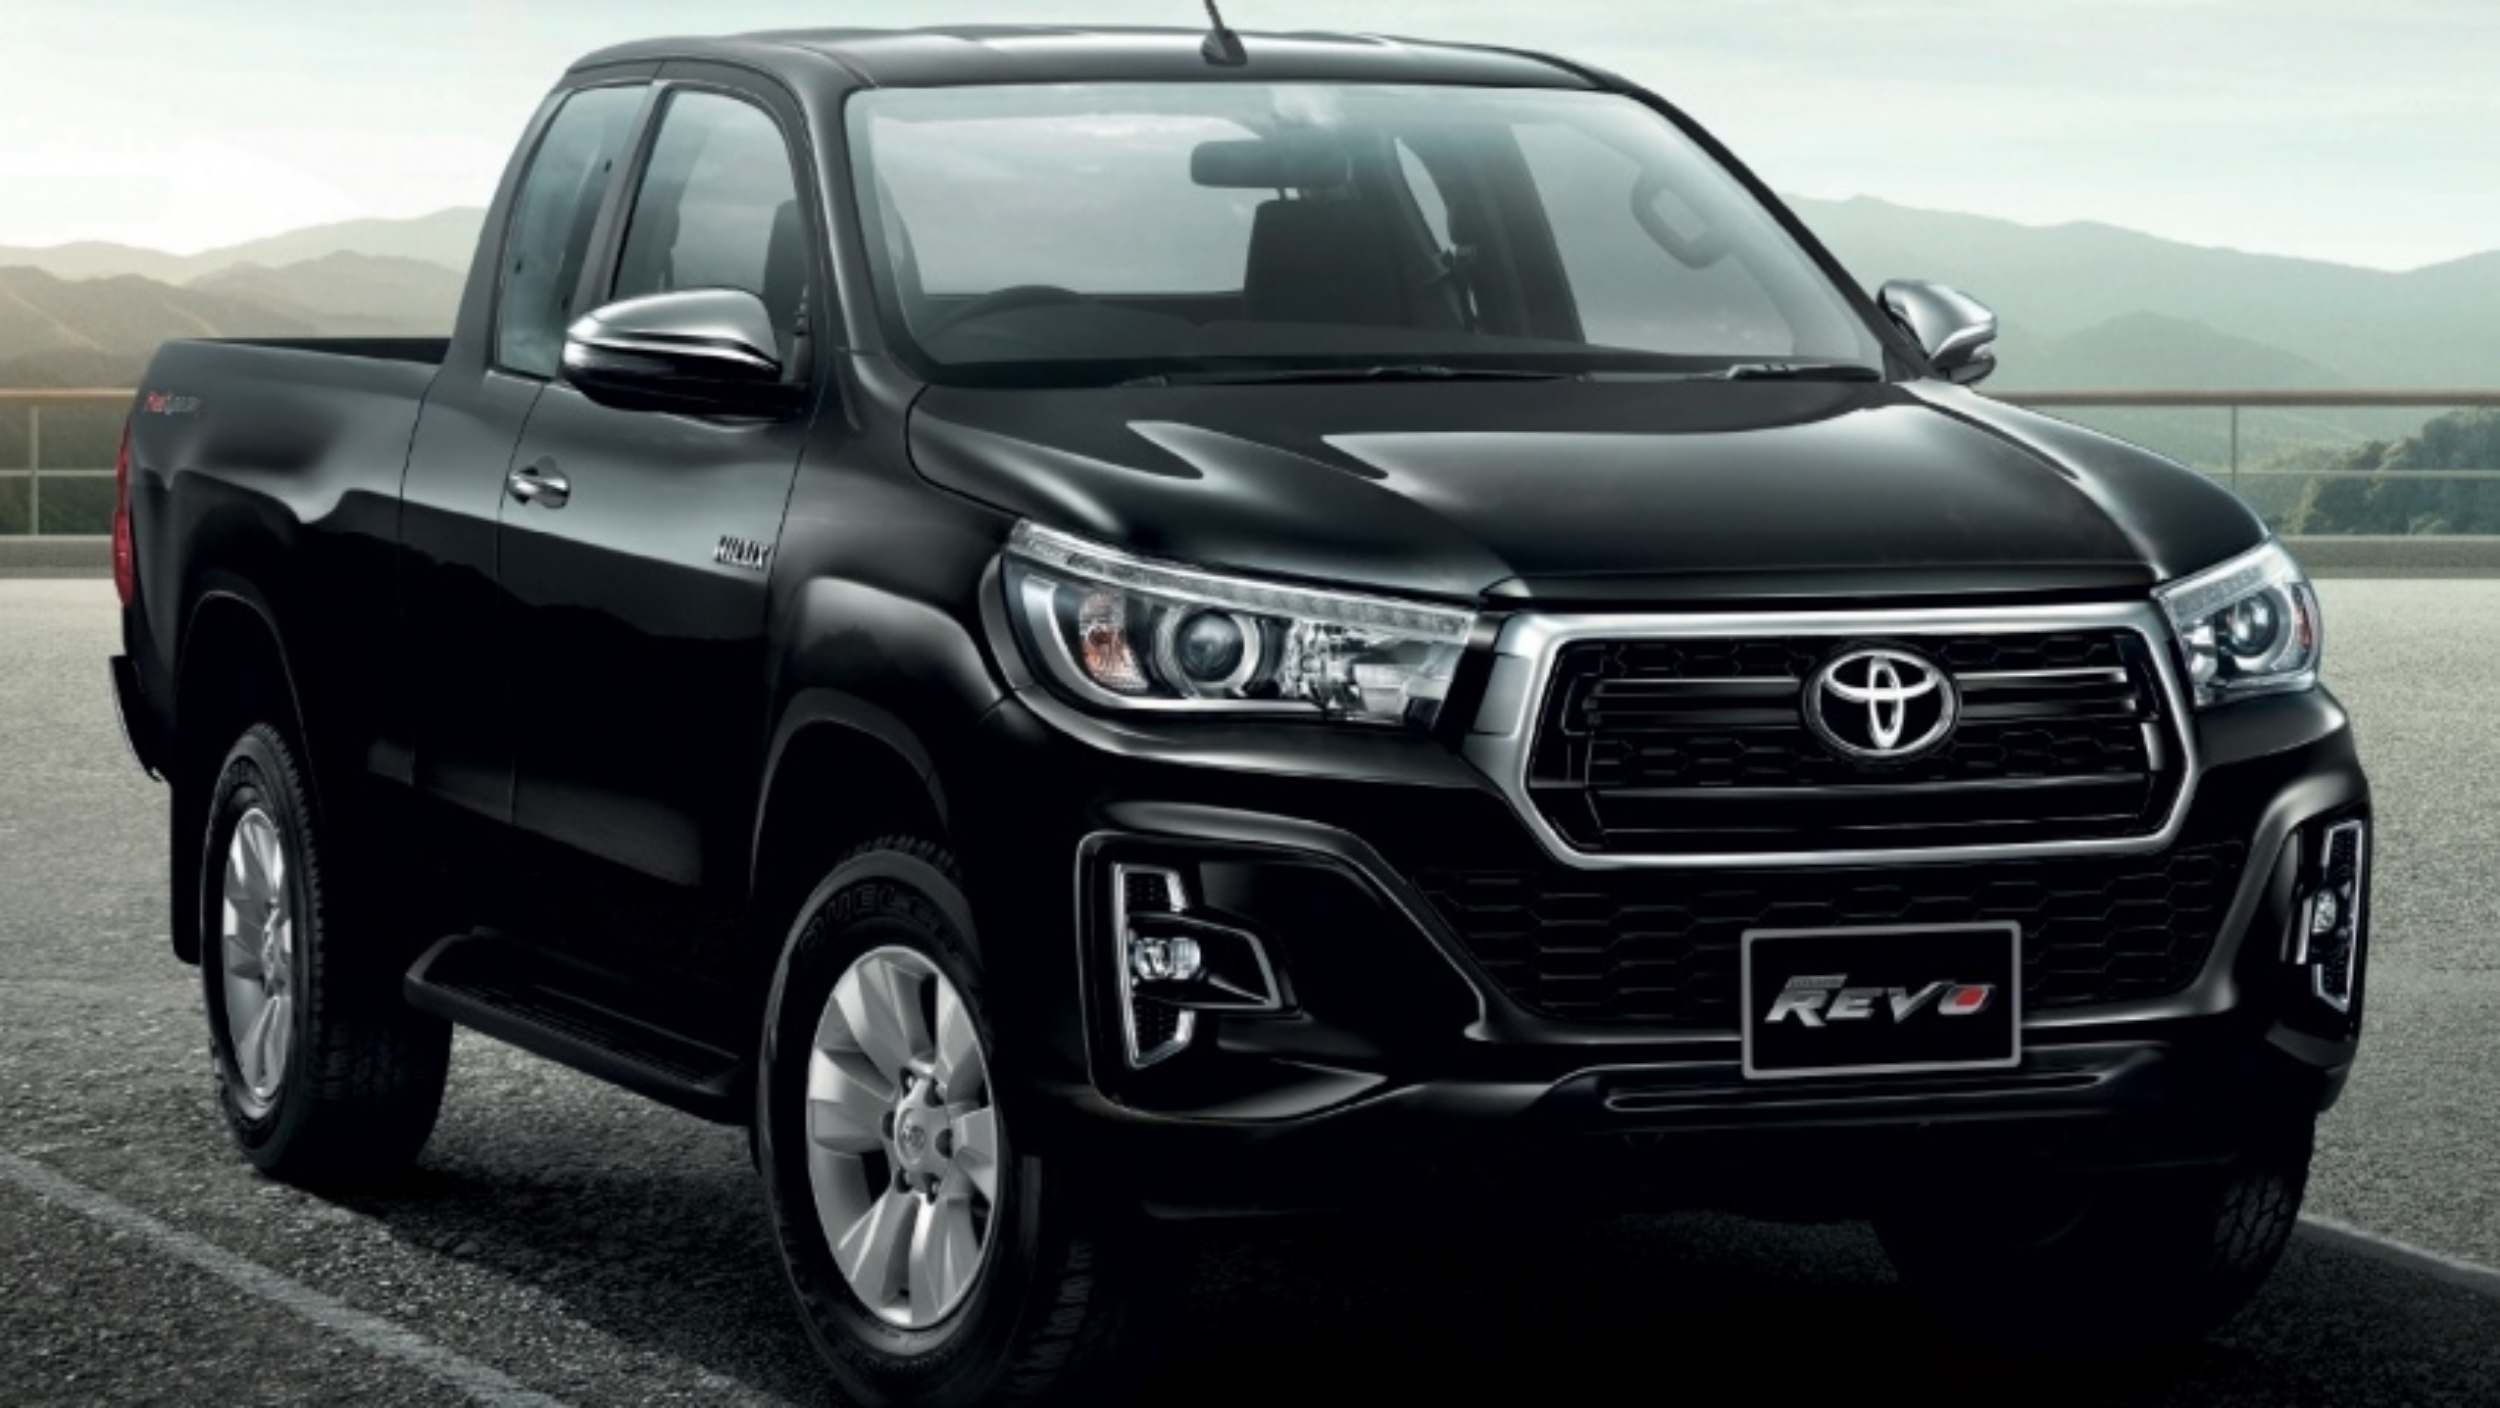 News - 2018 Toyota Hilux Gets Another Refresh